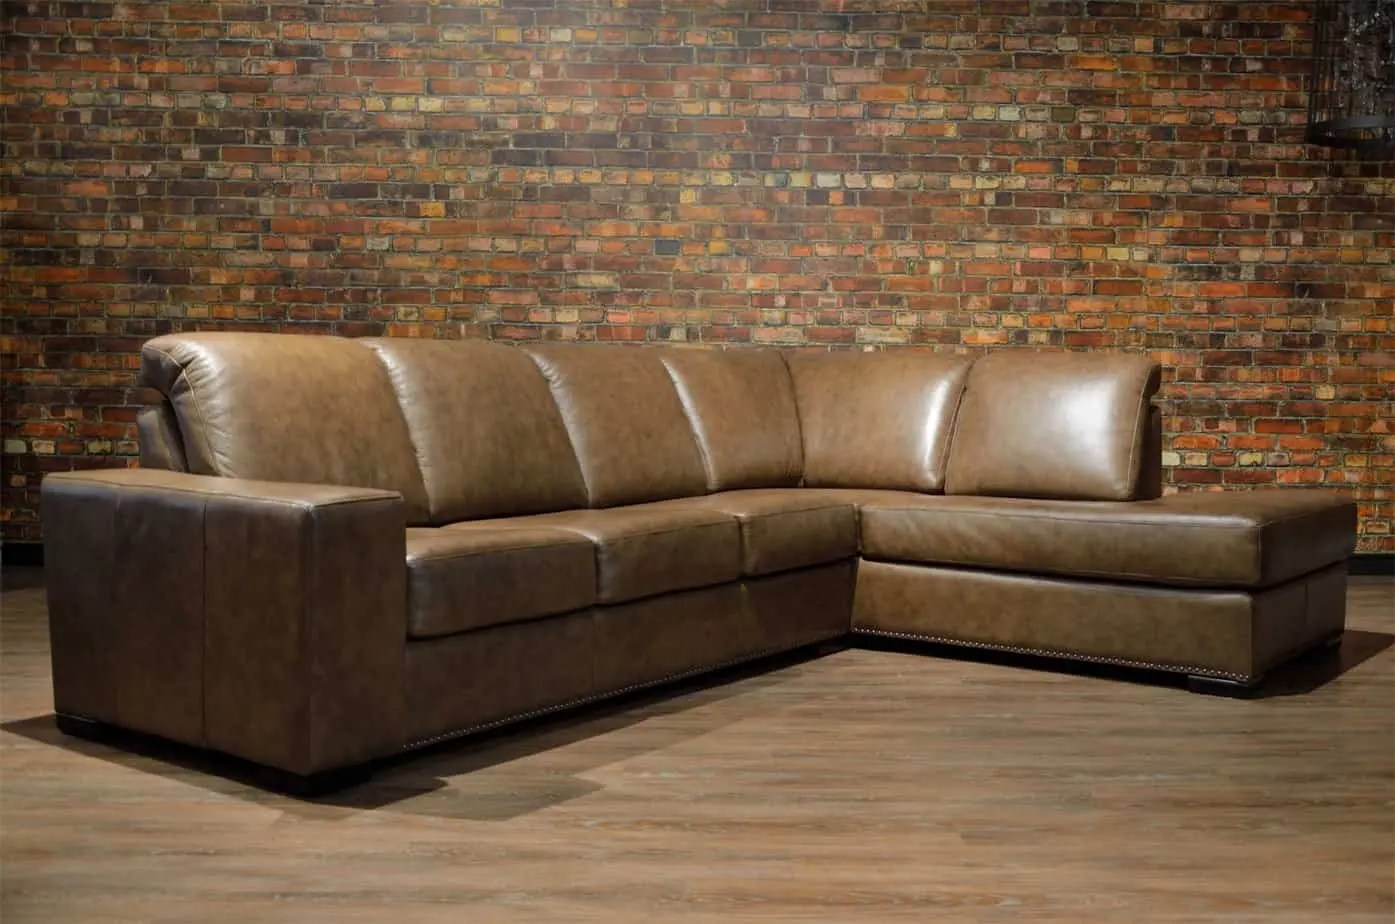 Leather Couch Canada Canadian Sofas The Zeus Leather Sectional Canada S Boss